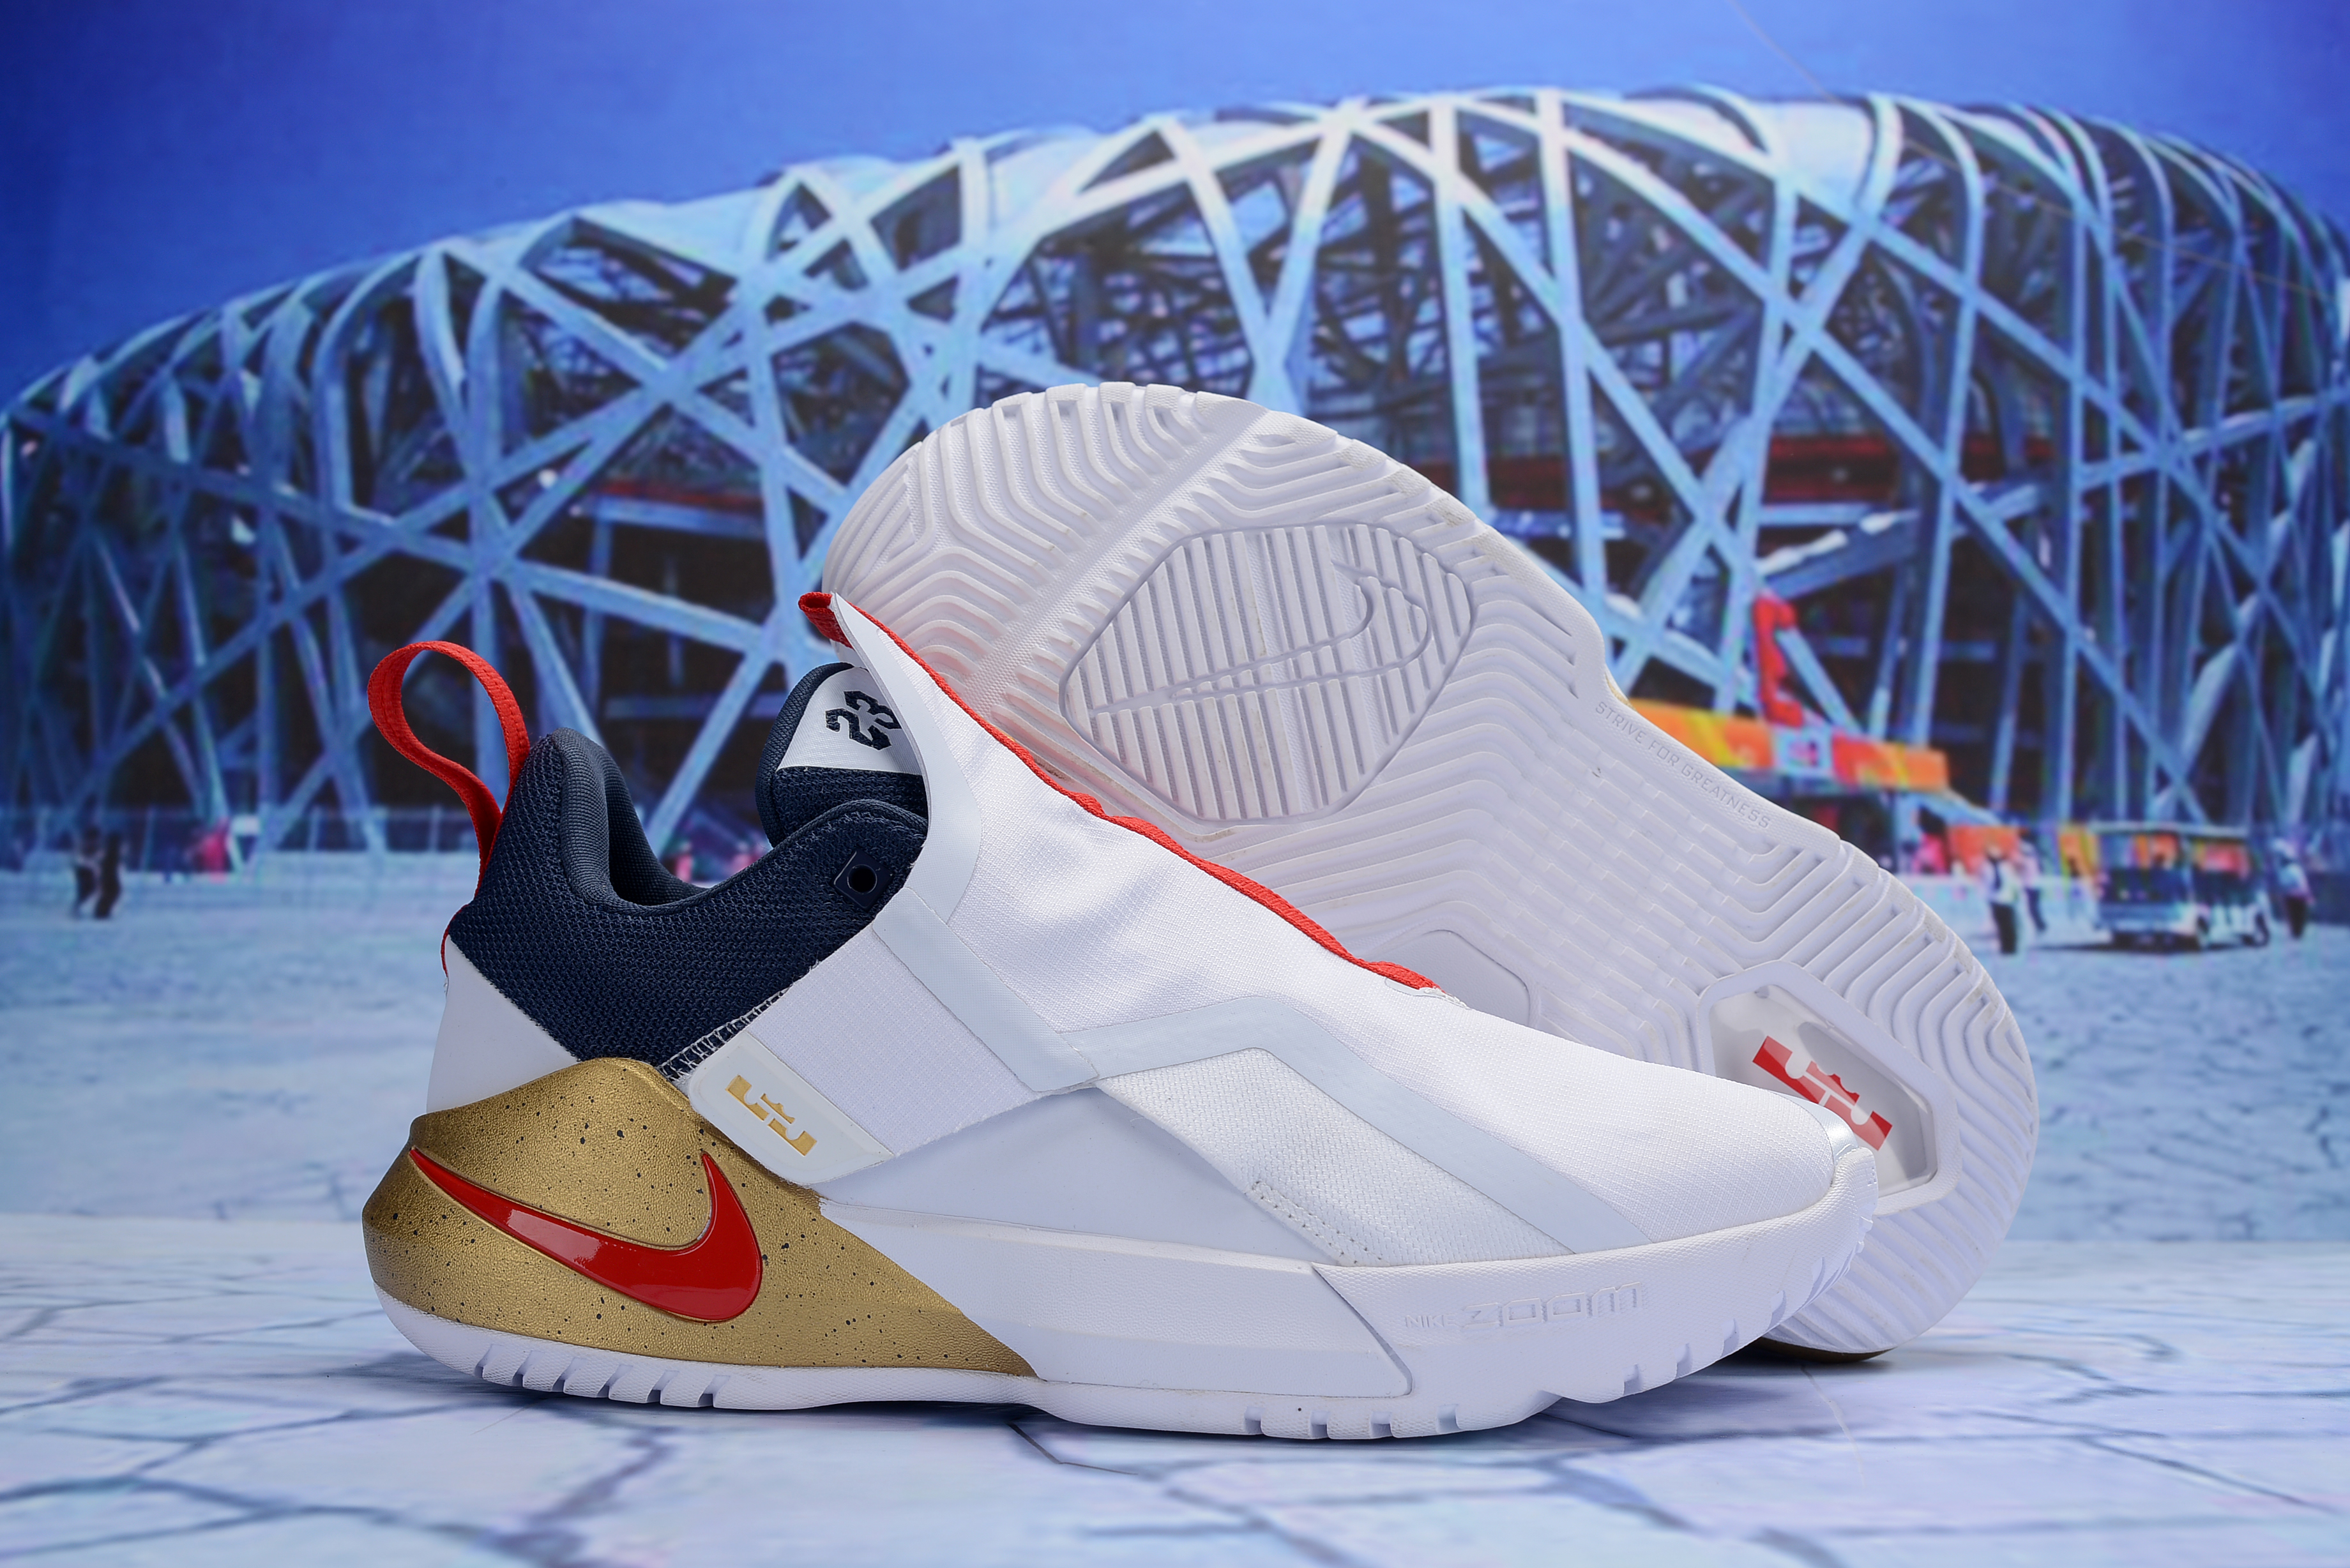 Nike LeBron Ambassador 11 White Red Gold Blue Shoes